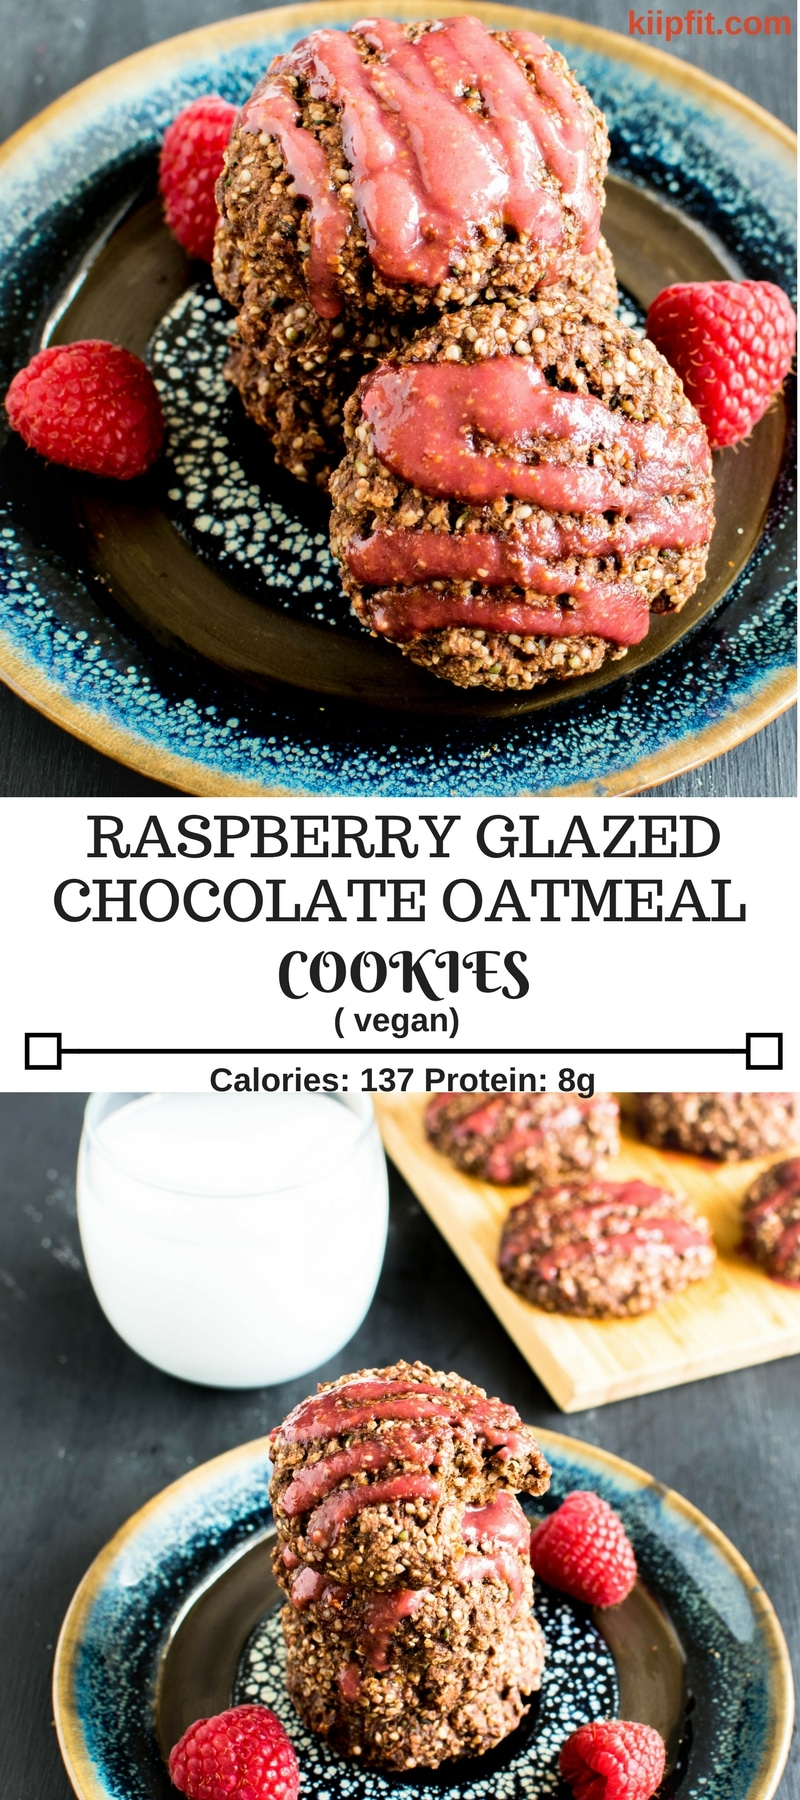 Raspberry Glazed Chocolate Oatmeal Cookies are healthy, moderately sweet in taste and protein rich. These vegan cookies are easy to bake and are satisfying for the taste buds. They not only serve as a dessert but these are great as a breakfast and or as a pre-workout snack [ vegan ] kiipfit.com